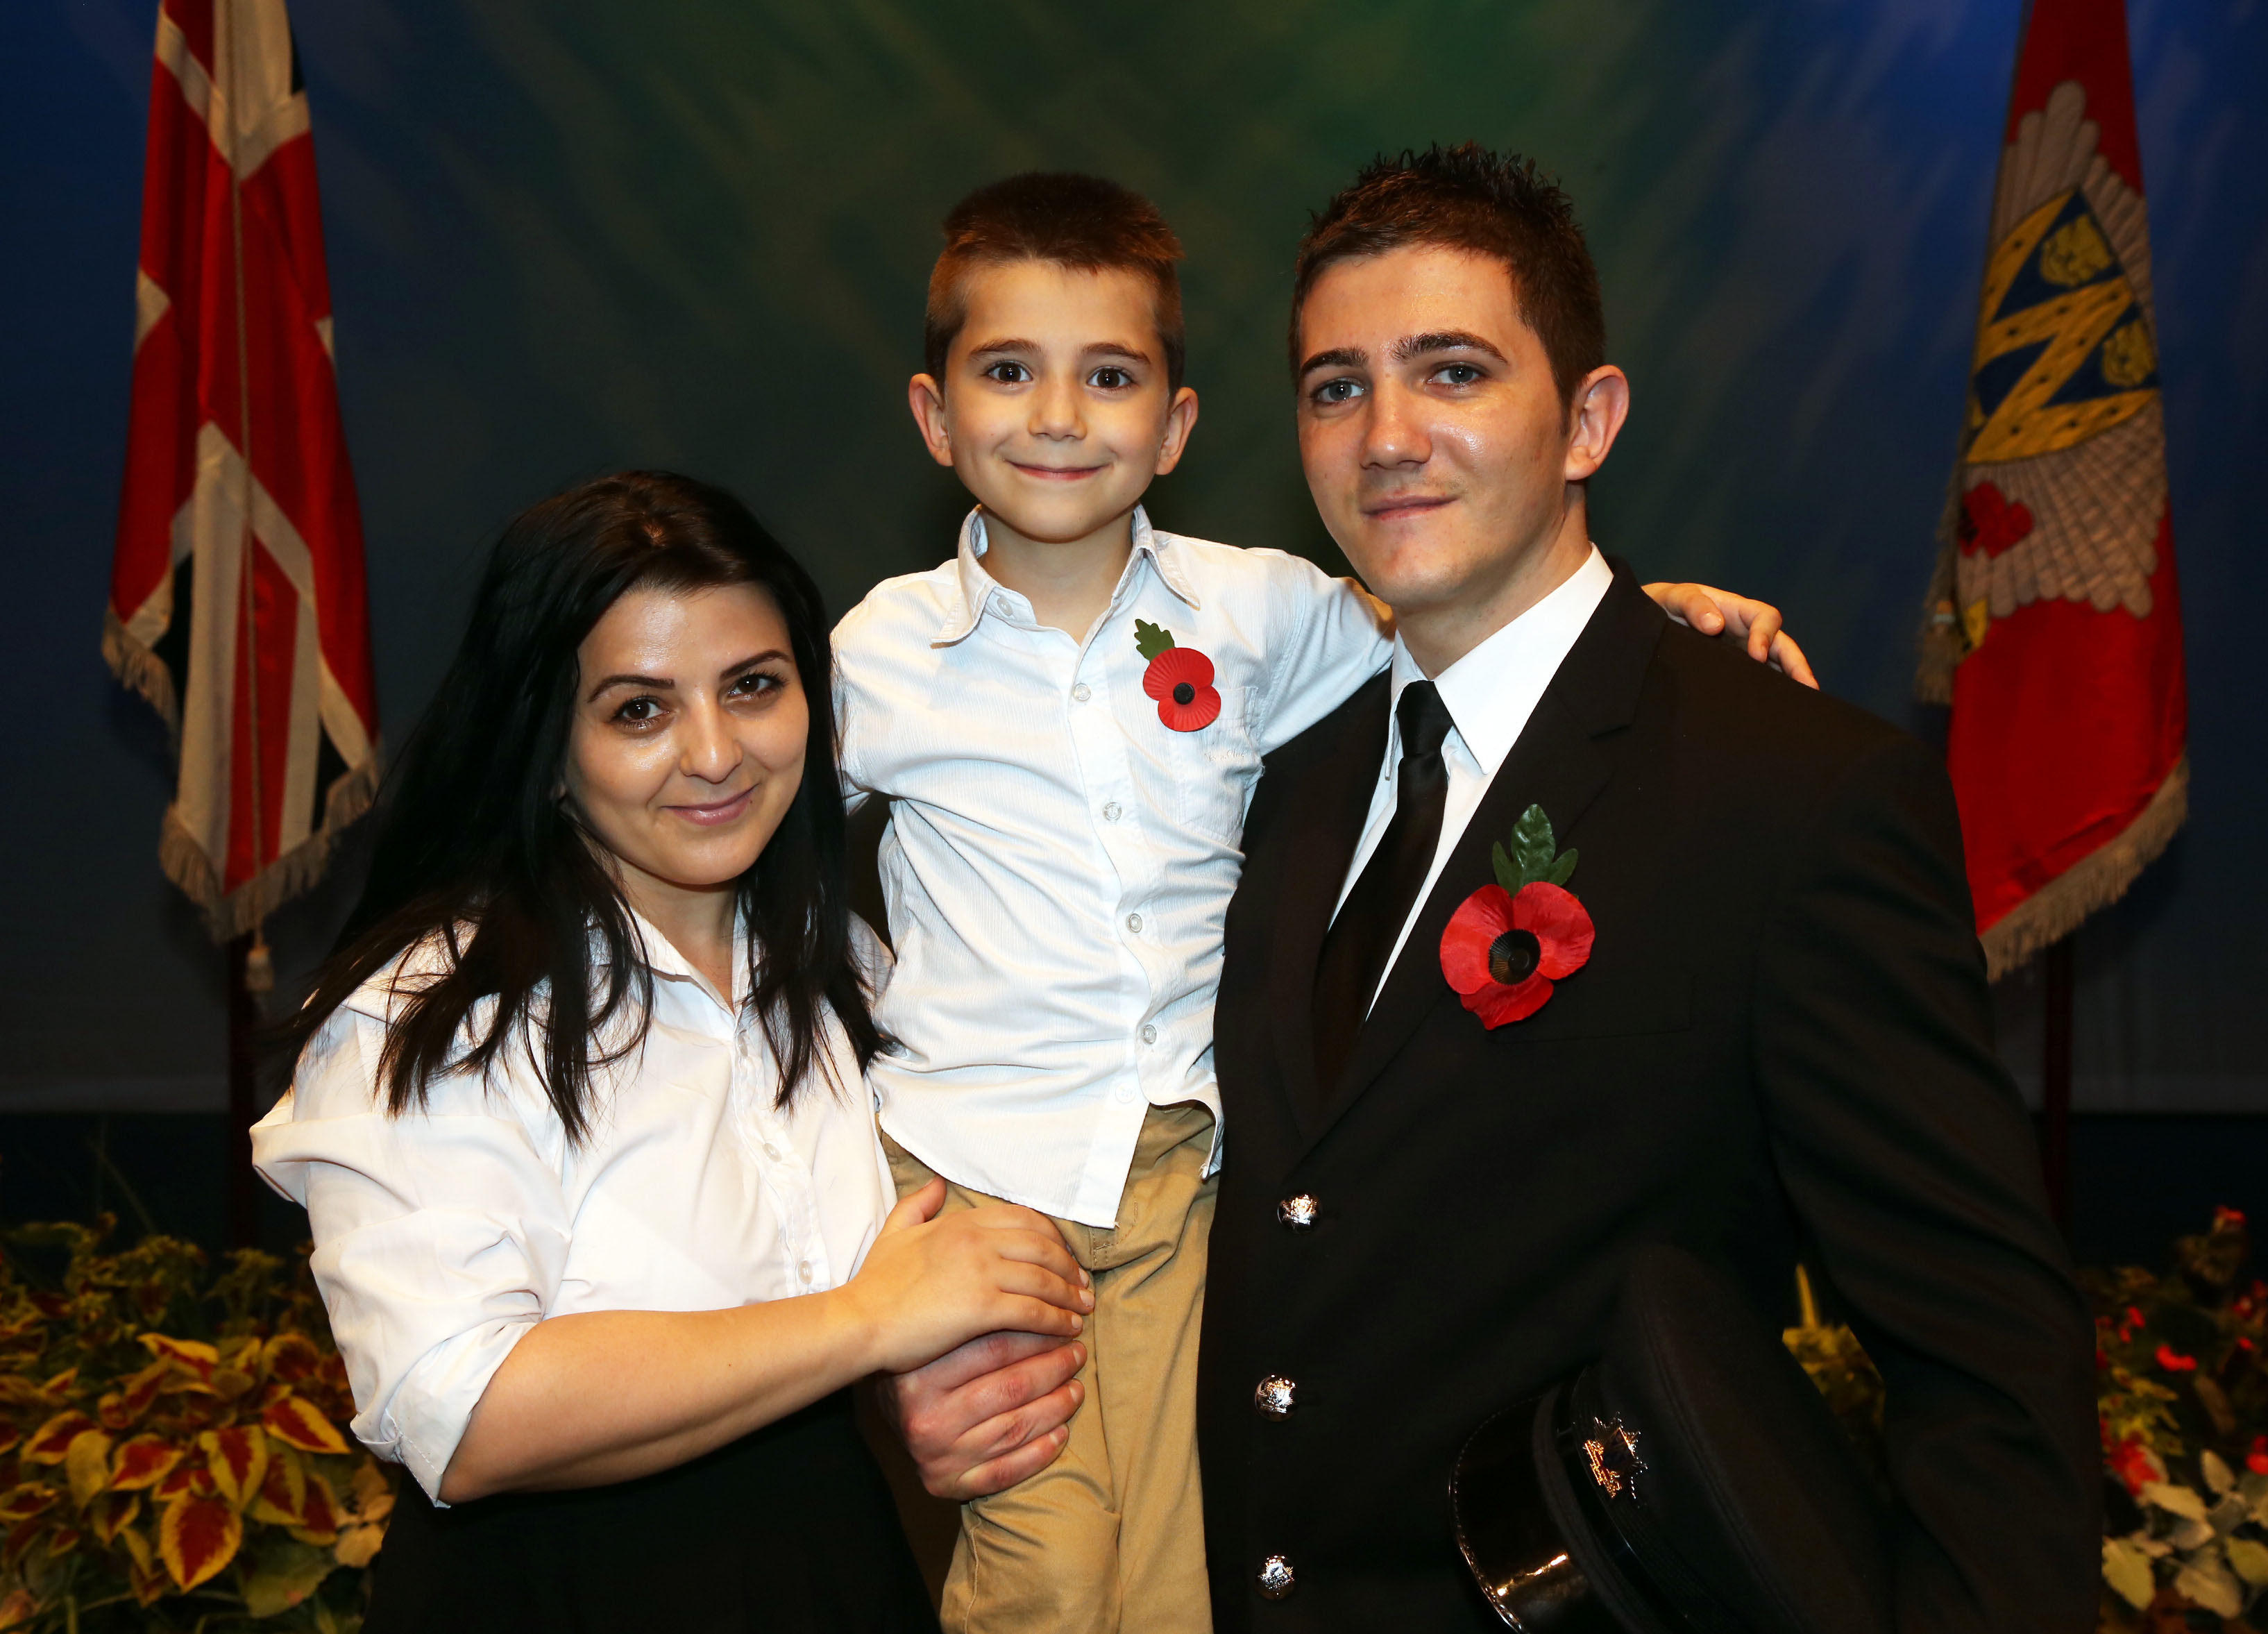 From Romania to Shropshire – firefighter Bogdan Ciornei with wife Melania and son Fabian (7).